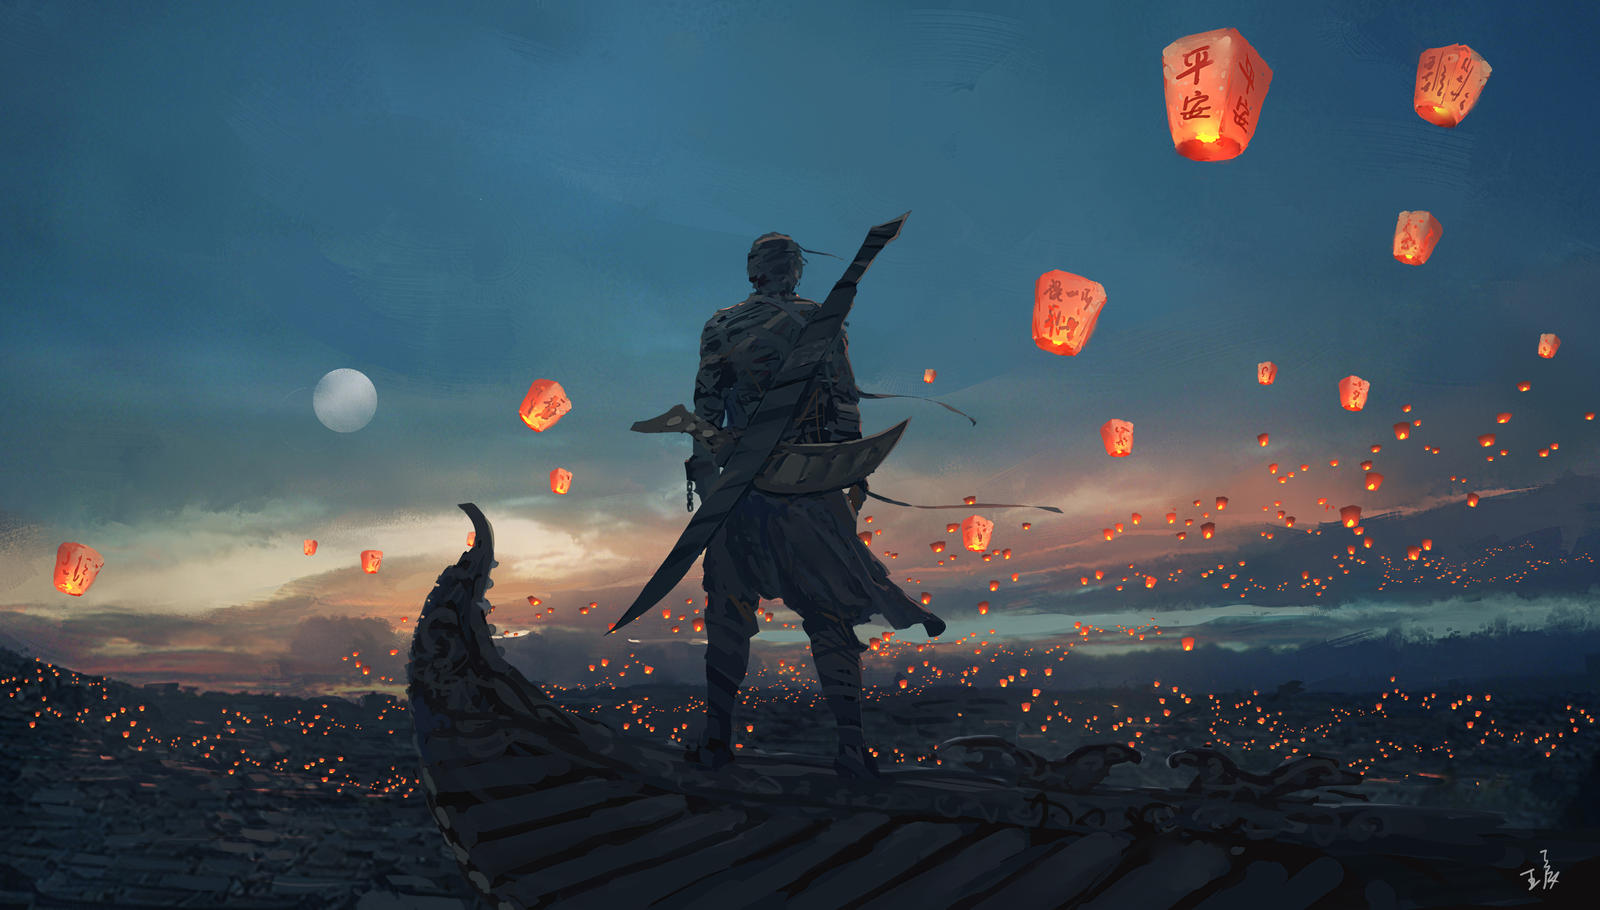 Sky lanterns by wlop on deviantart for Deviantart wlop